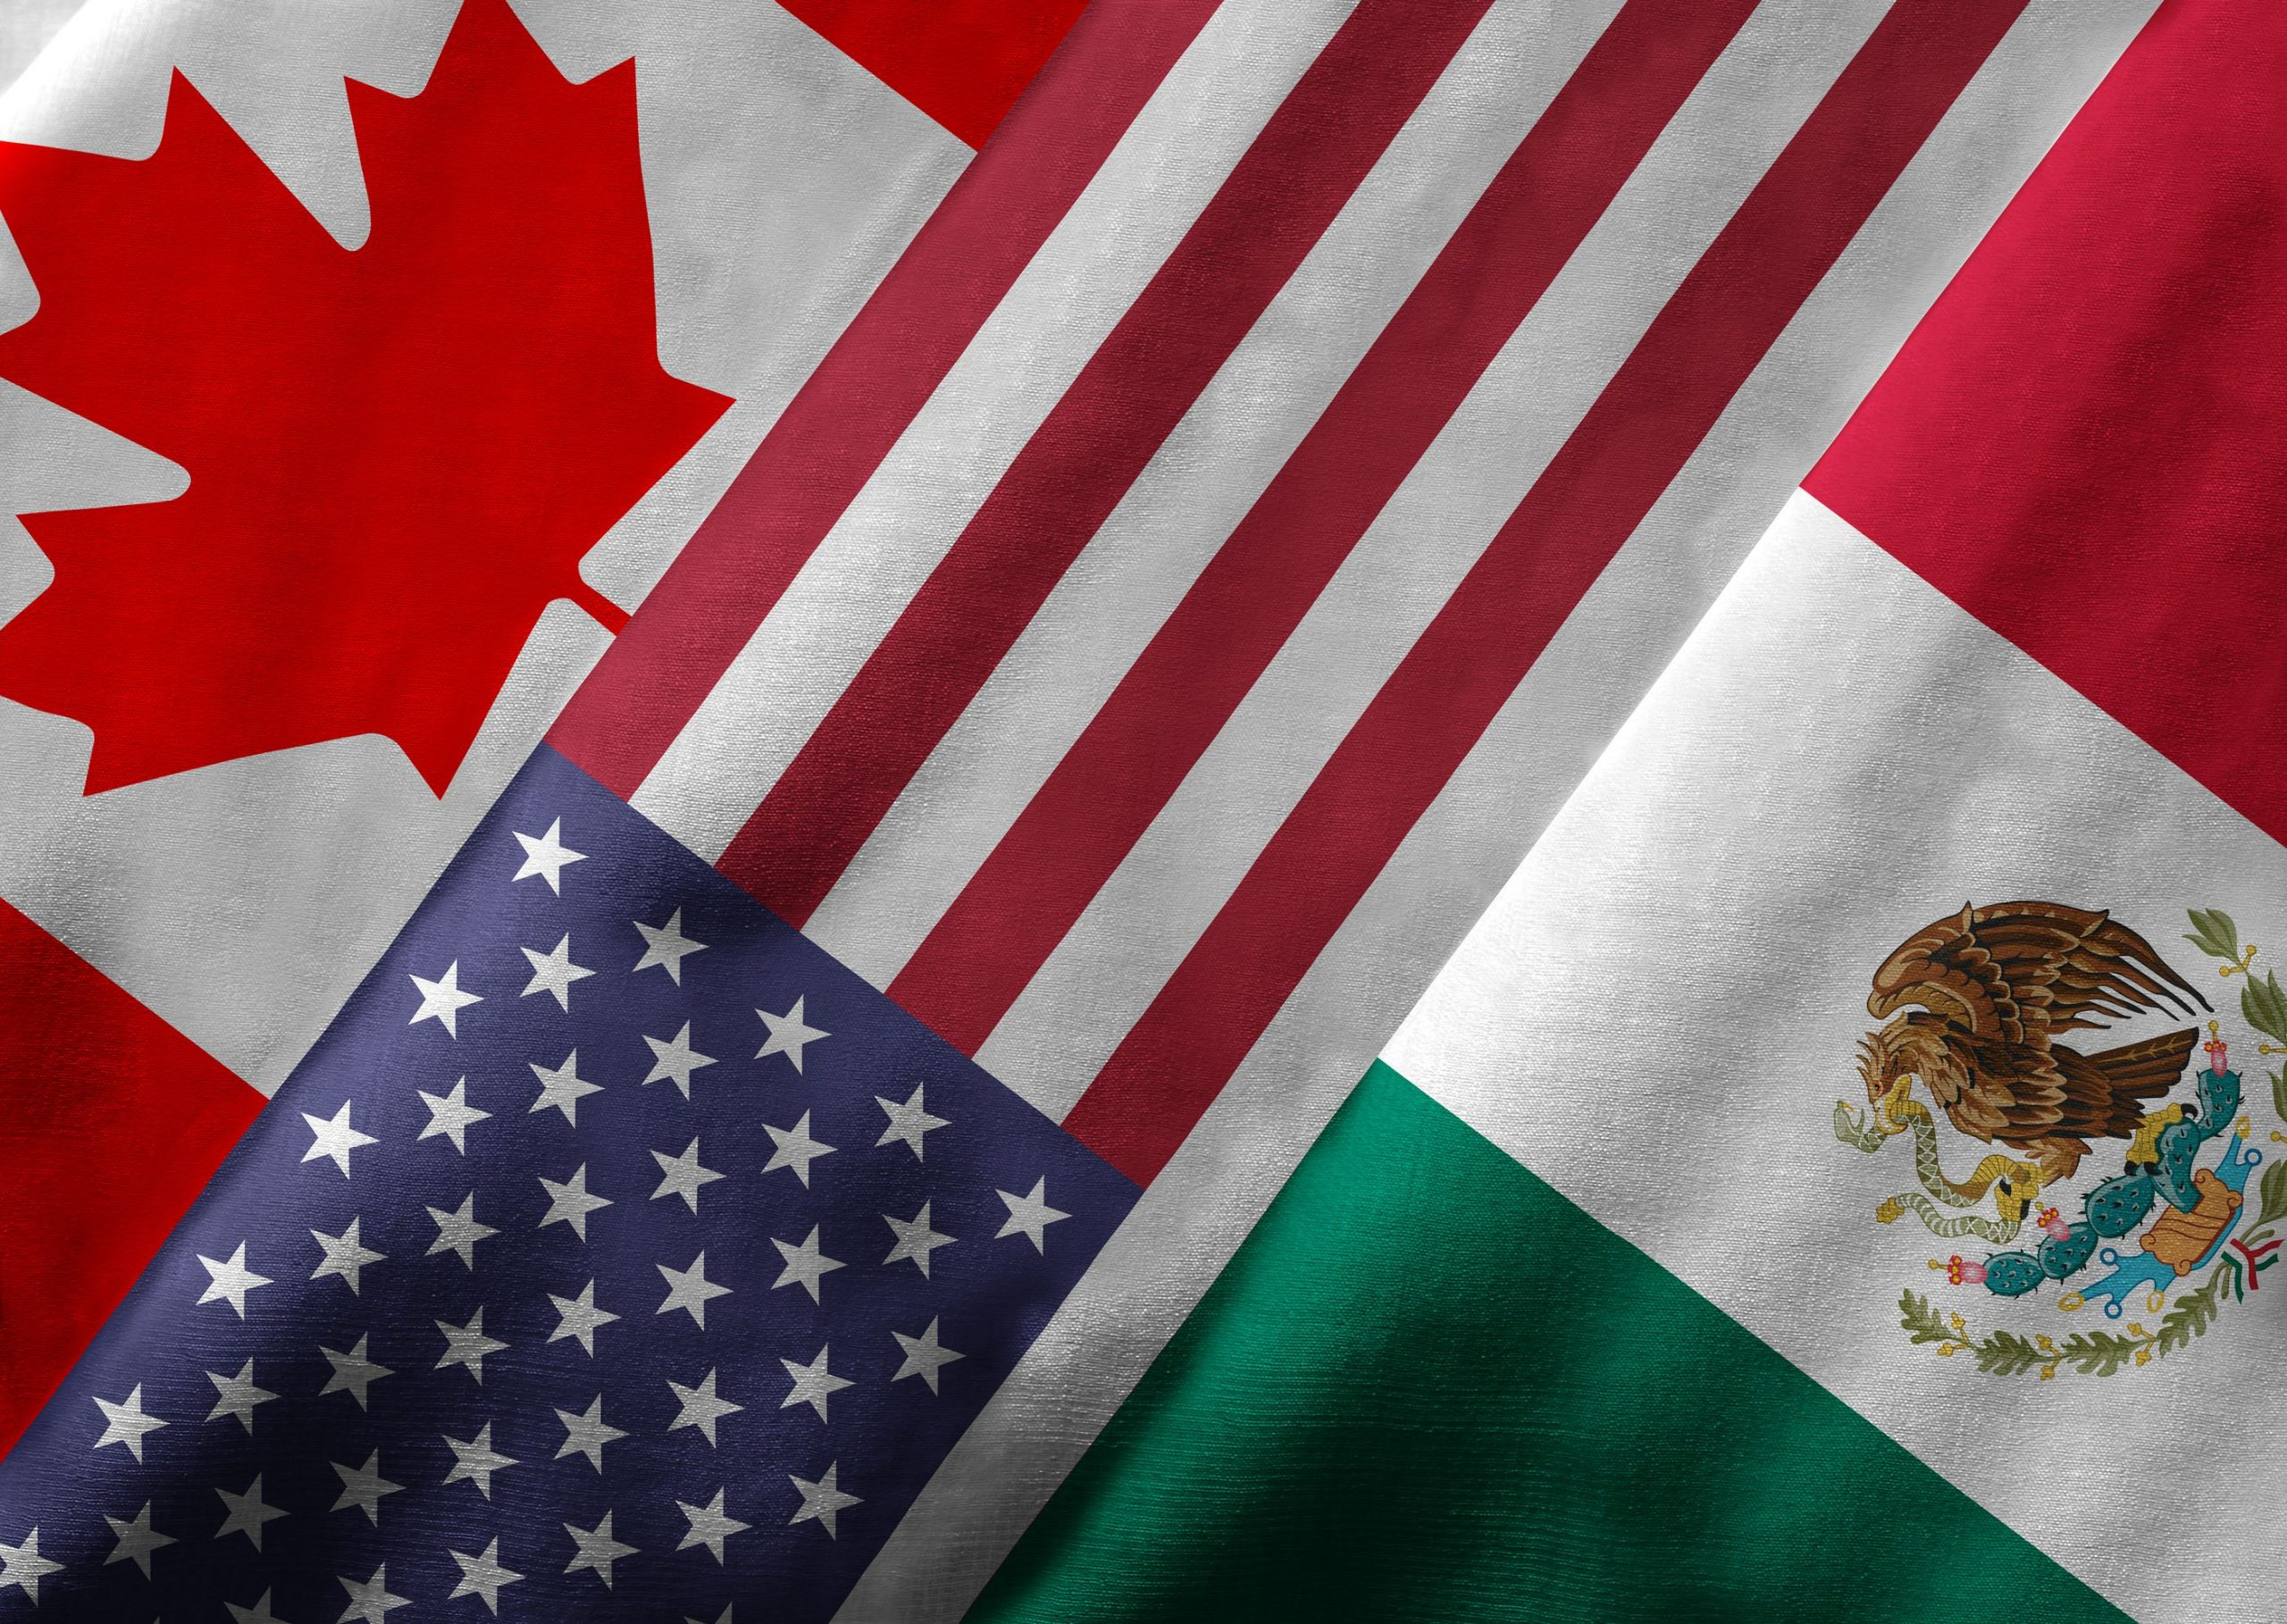 USMCA'S patents and data protection